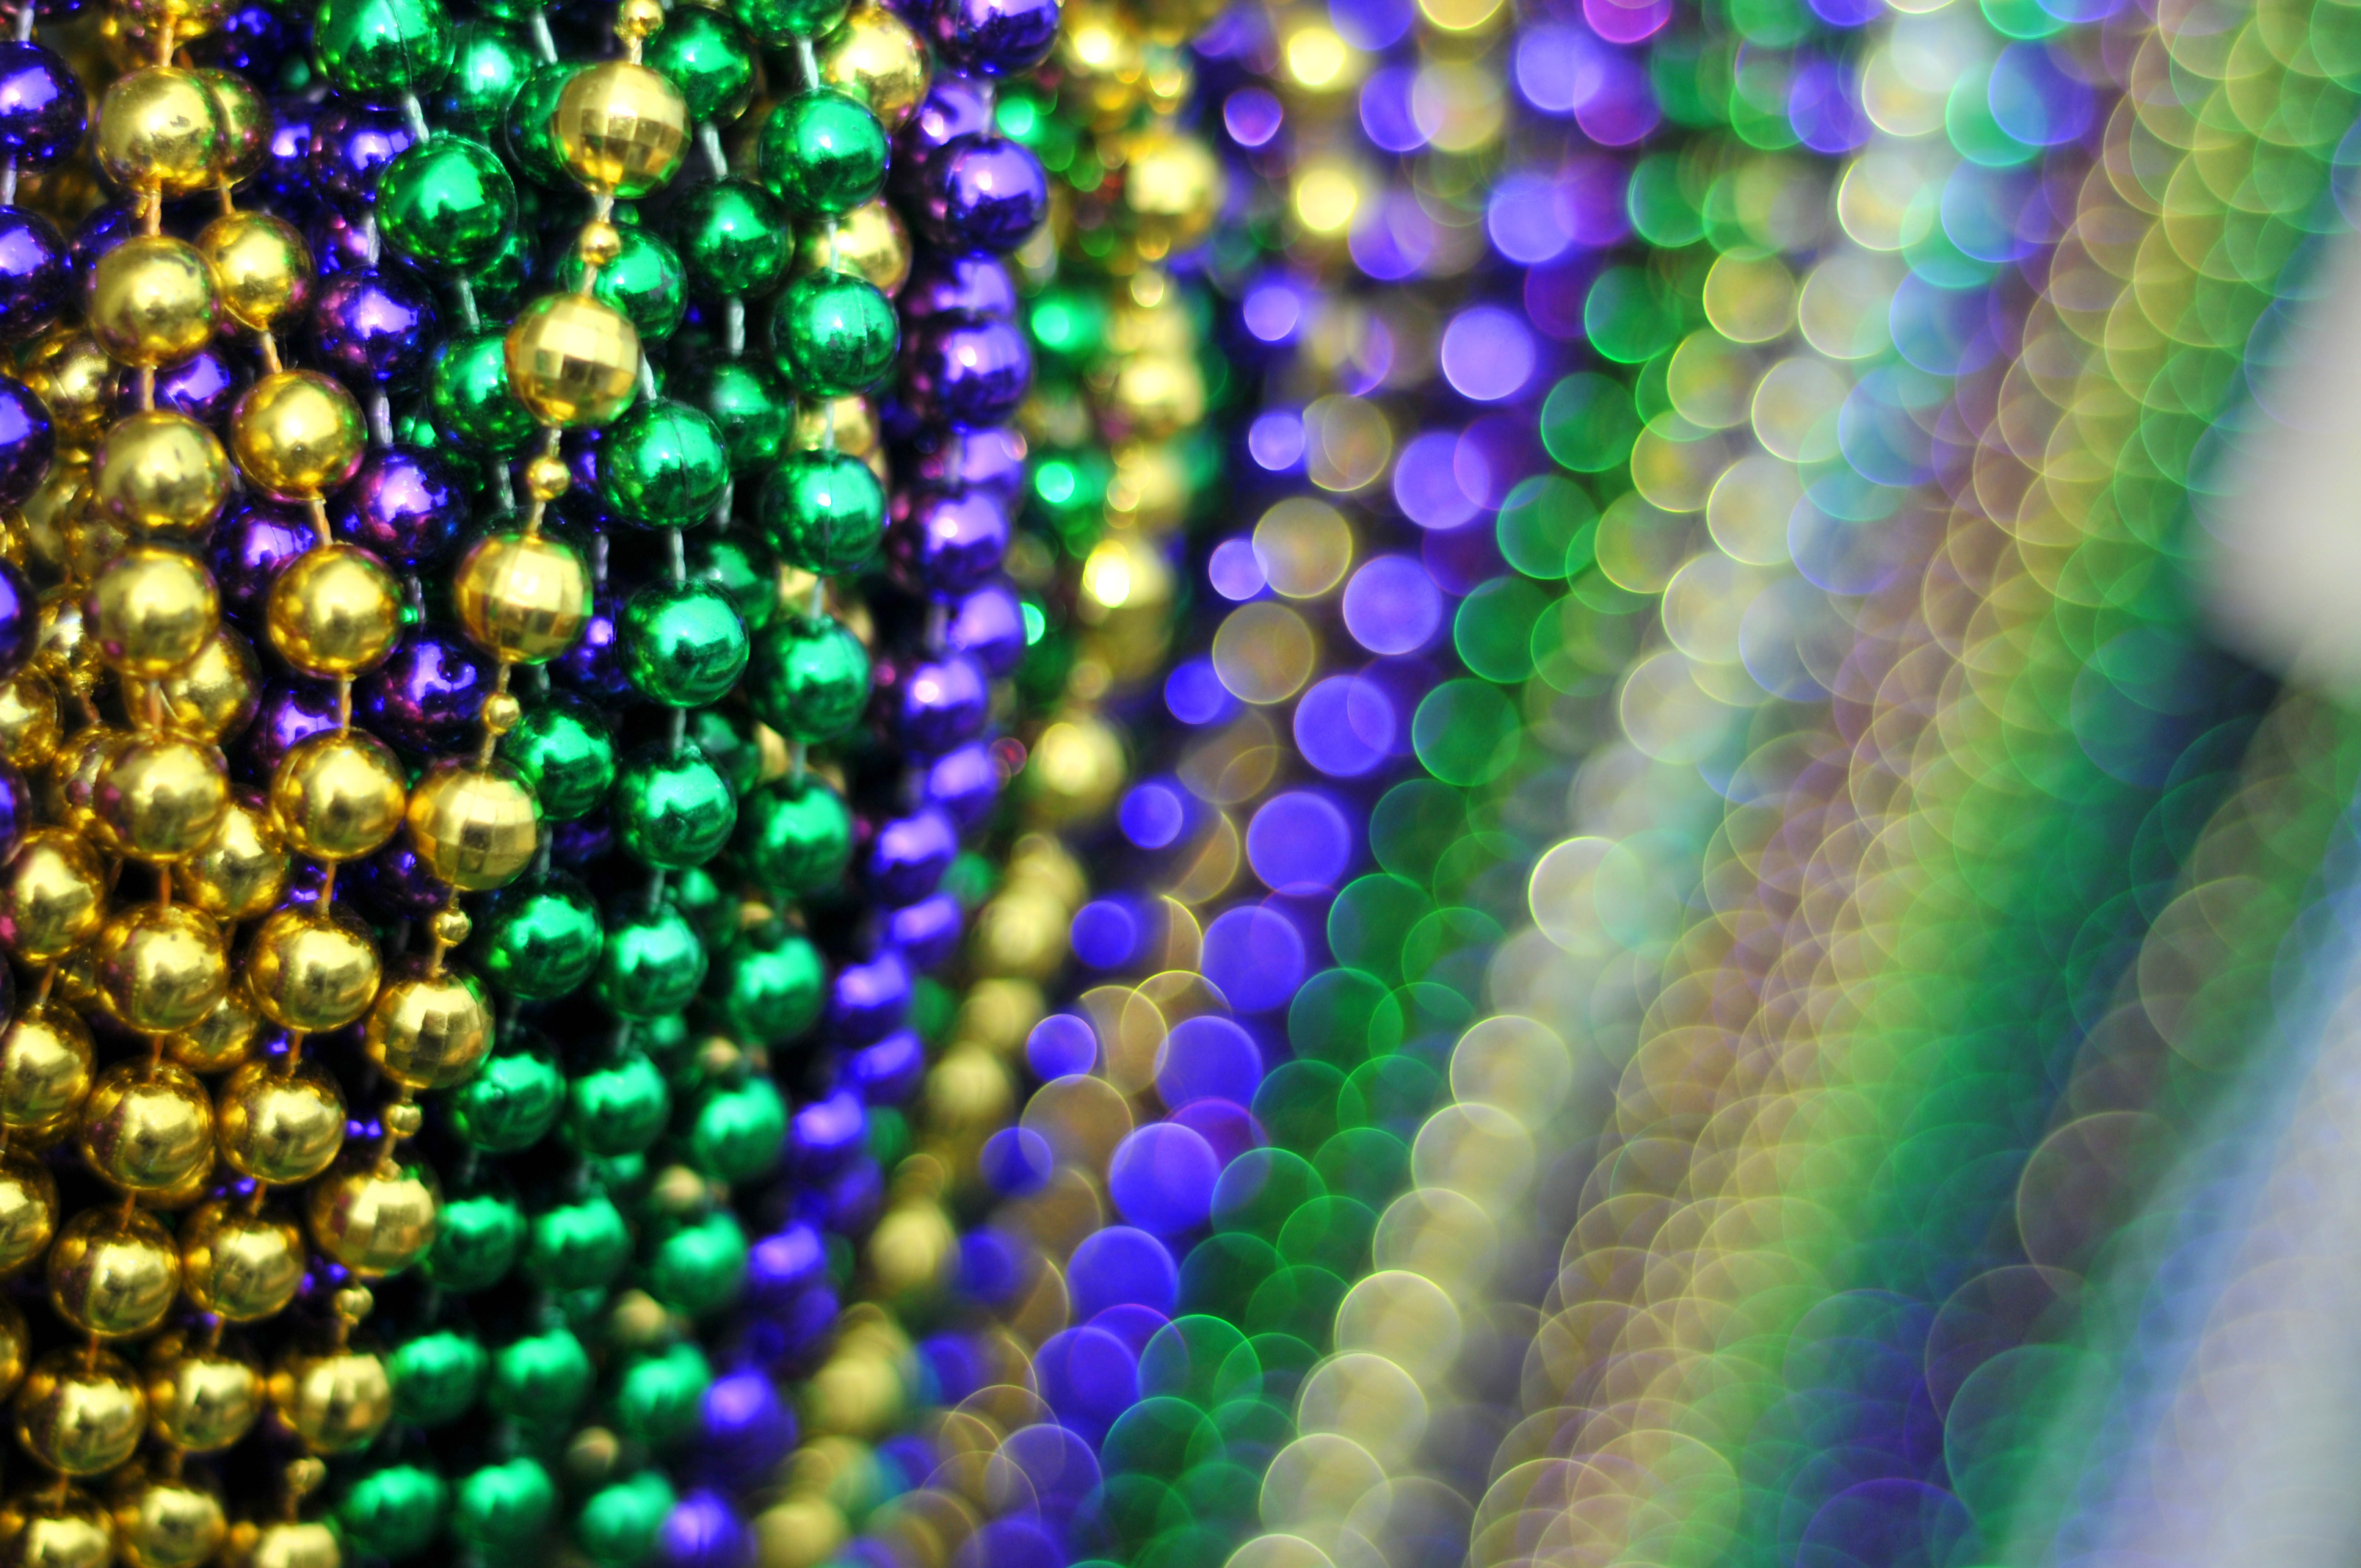 iphone 6 mardi gras wallpaper ✓ wallpaper directory